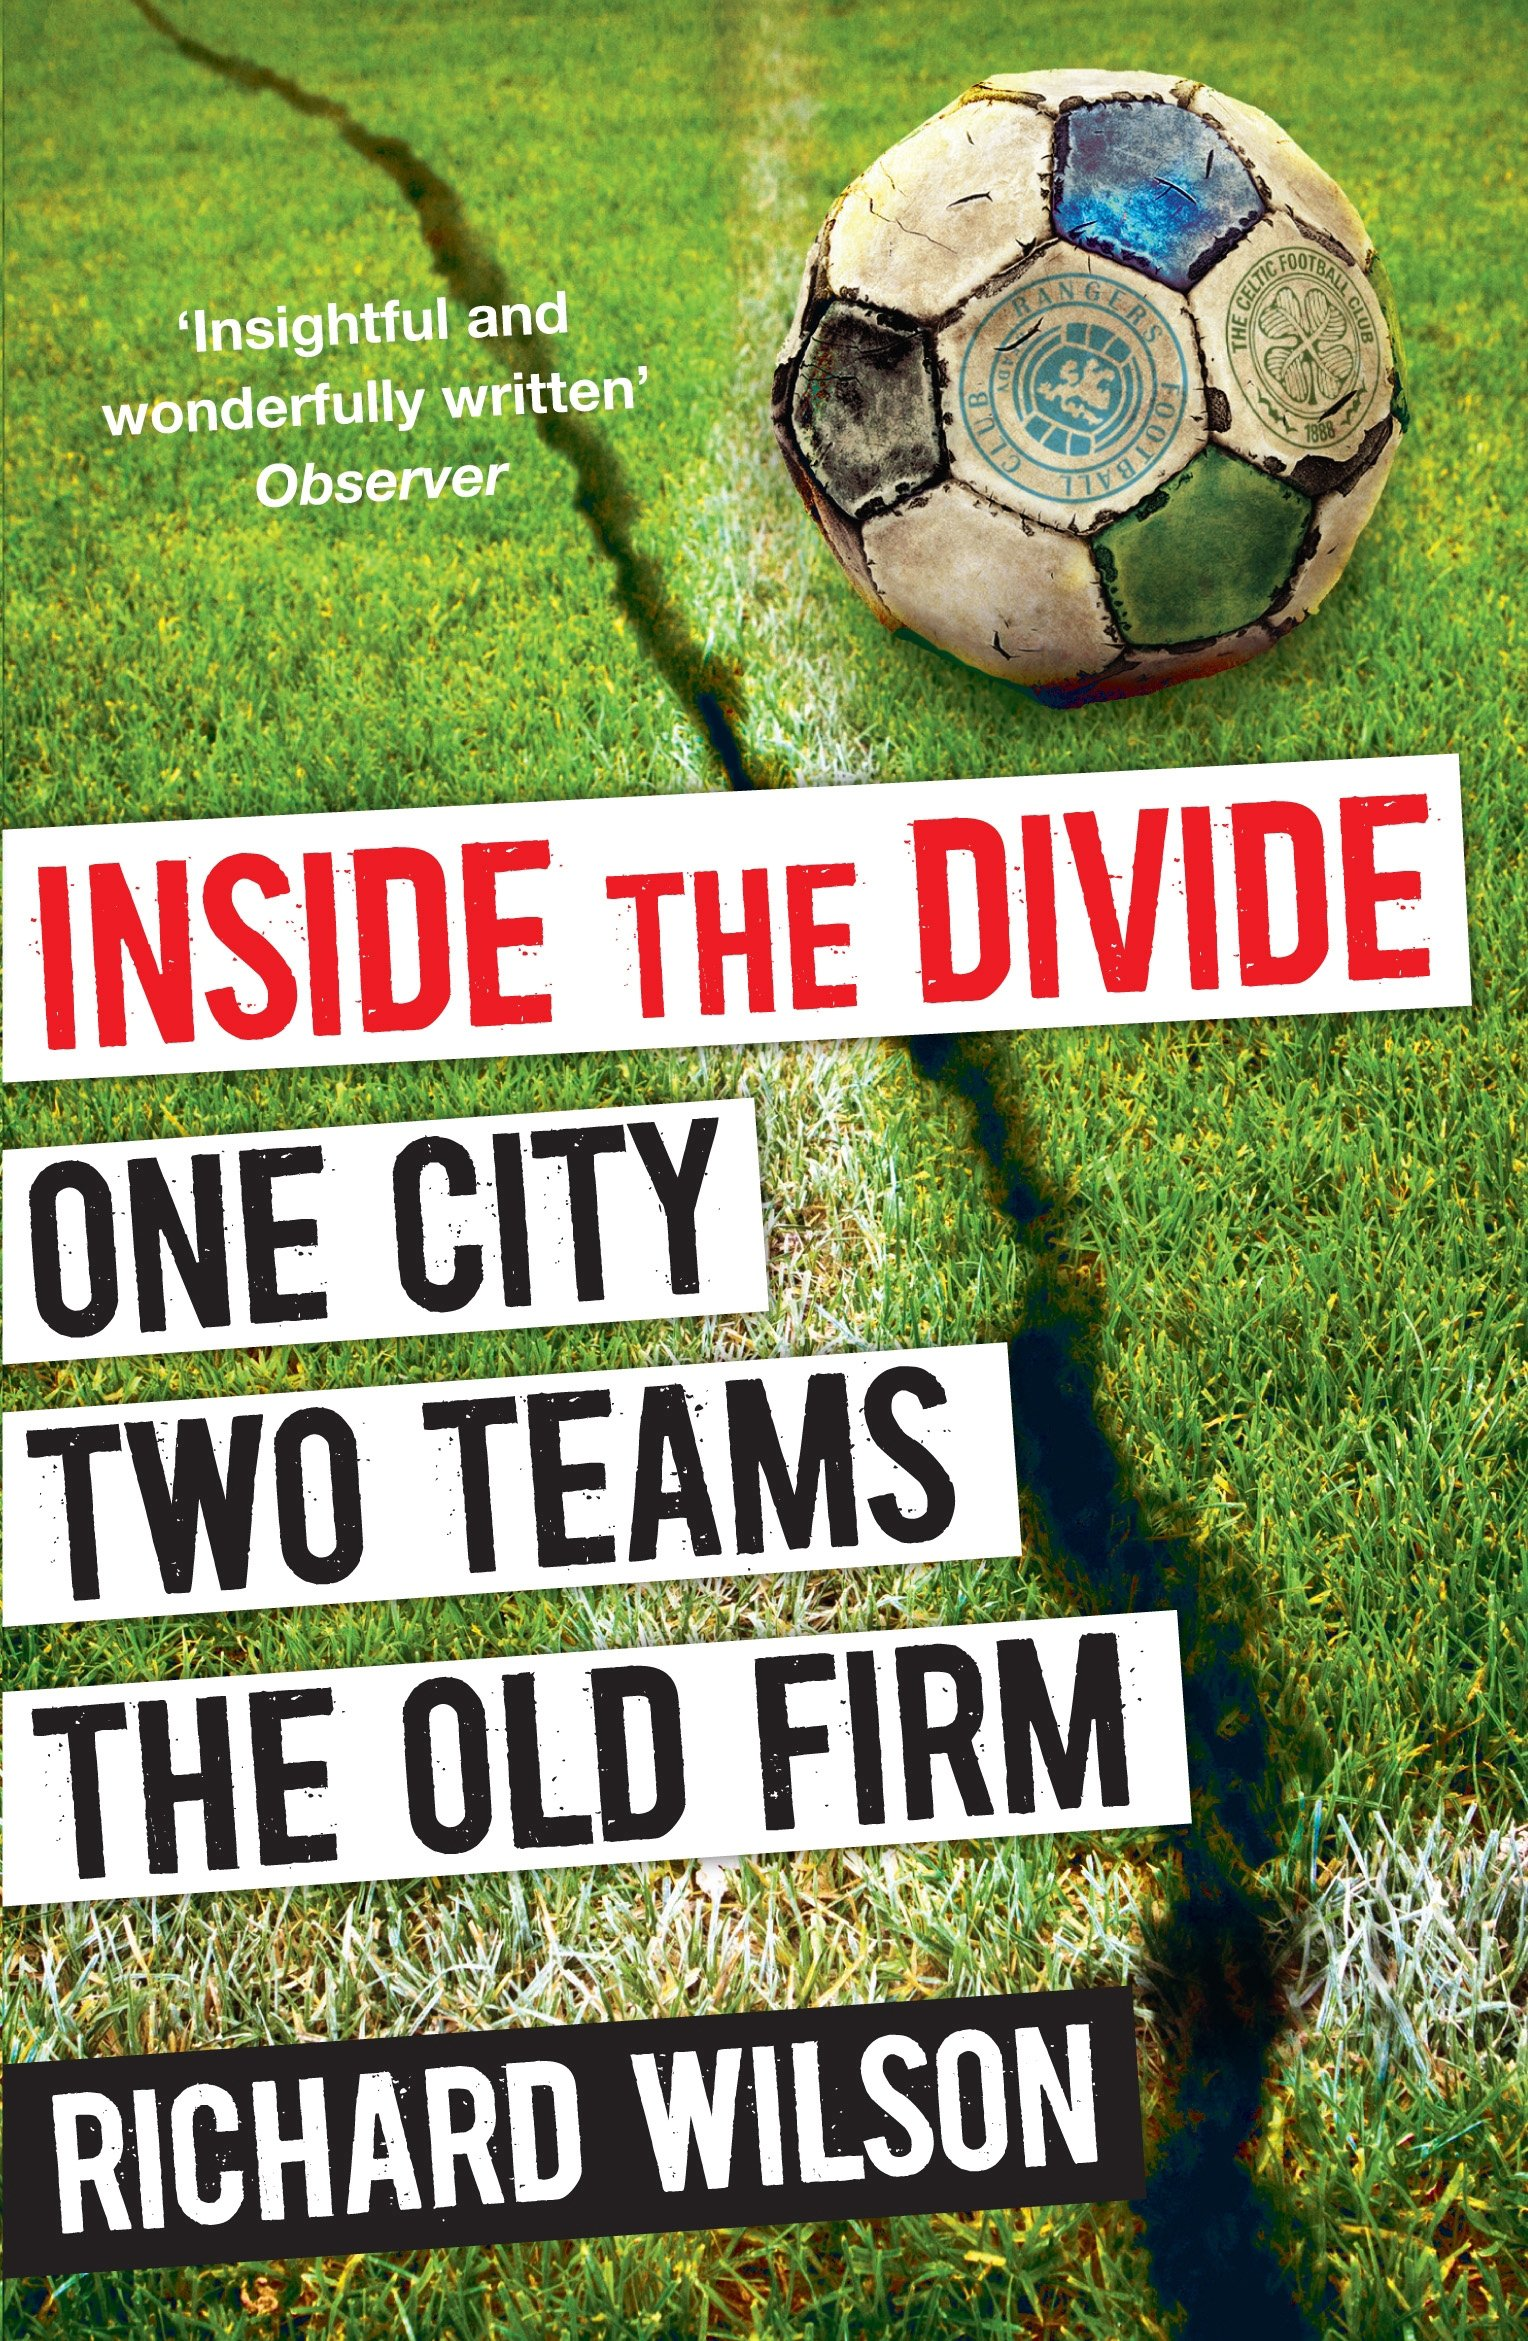 inside-the-divide-one-city-two-teams-the-old-firm